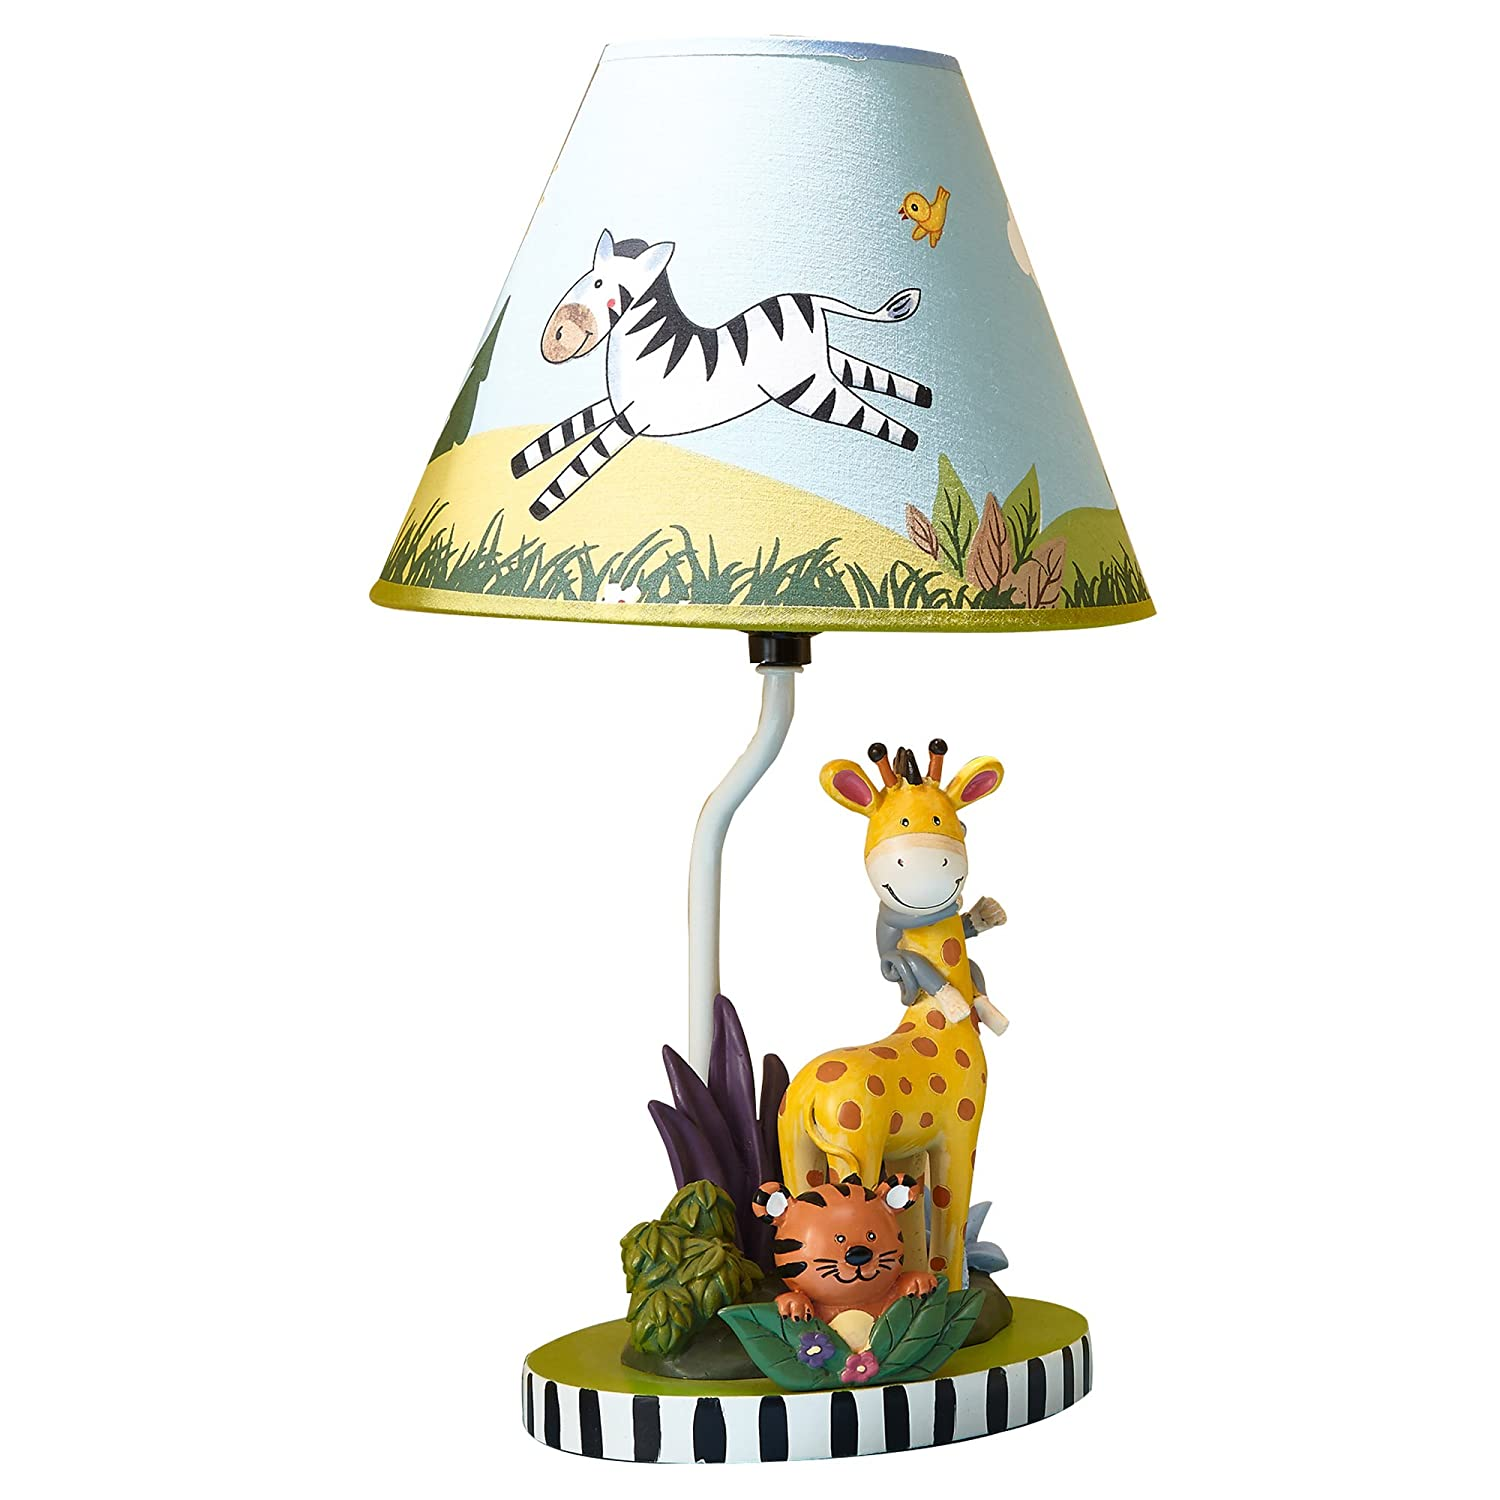 Amazon fantasy fields sunny safari animals thematic kids amazon fantasy fields sunny safari animals thematic kids table lamp imagination inspiring hand painted details non toxic lead free water based arubaitofo Gallery